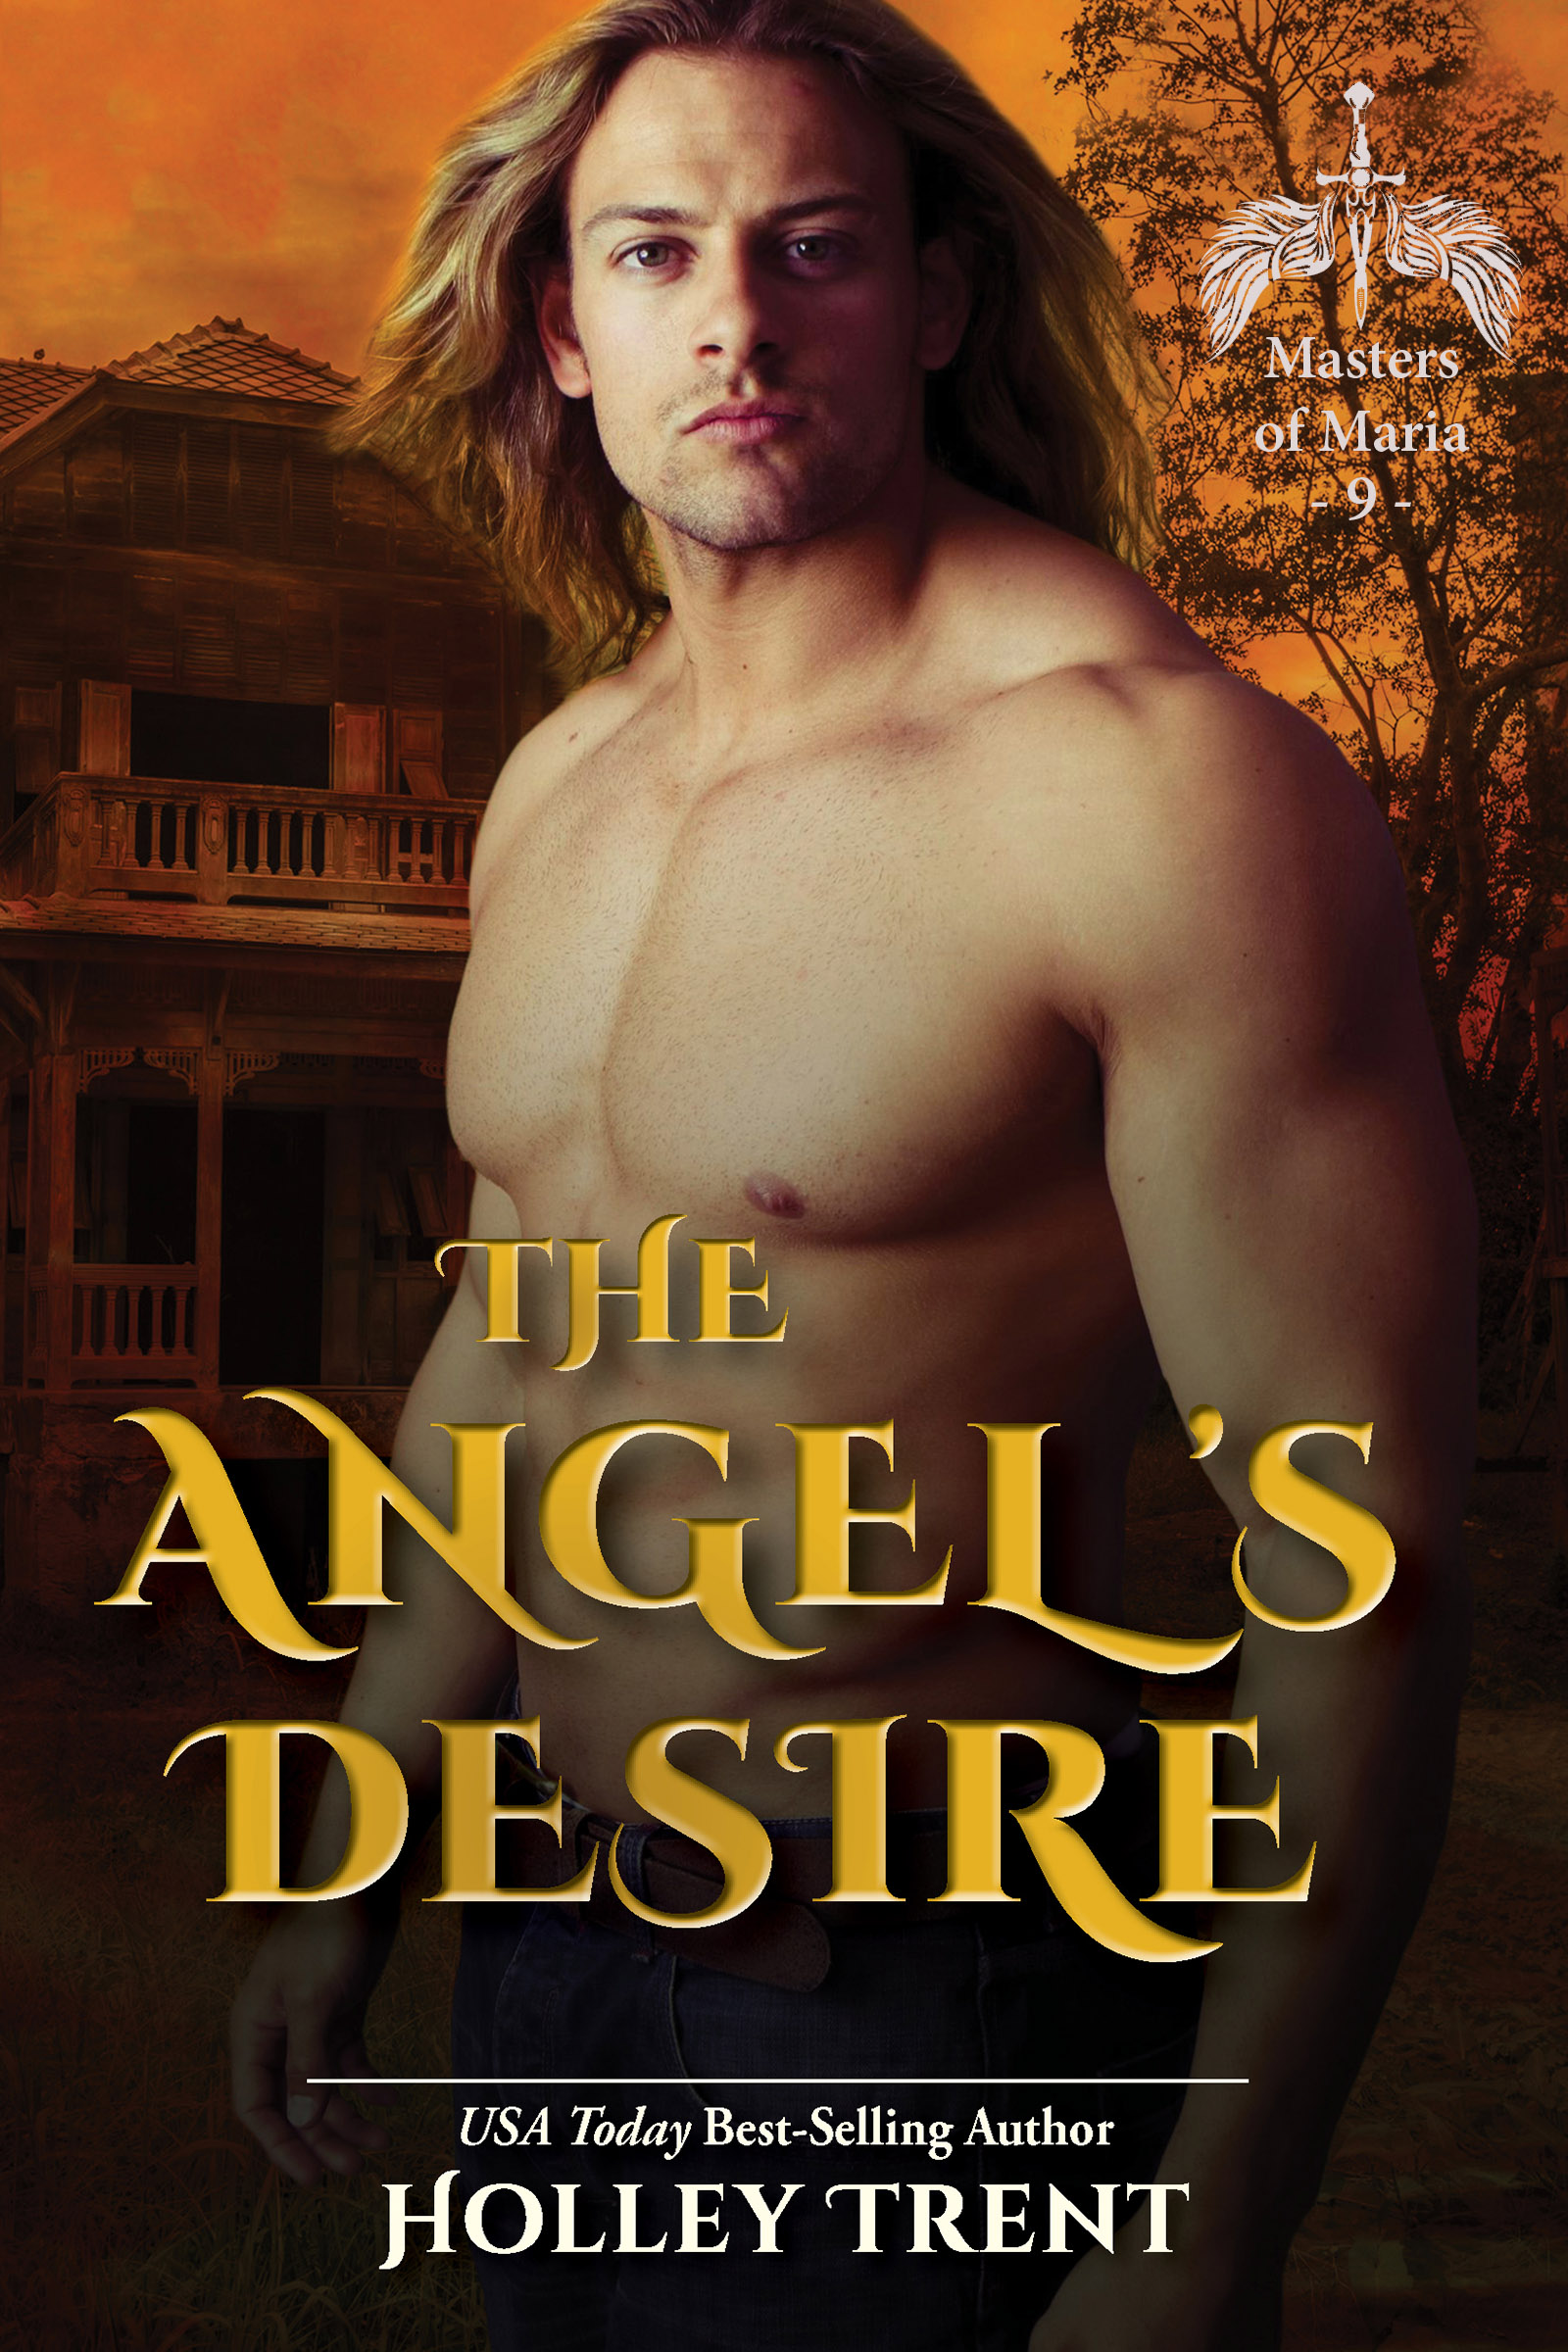 Cover of The Angel's Desire by Holley Trent